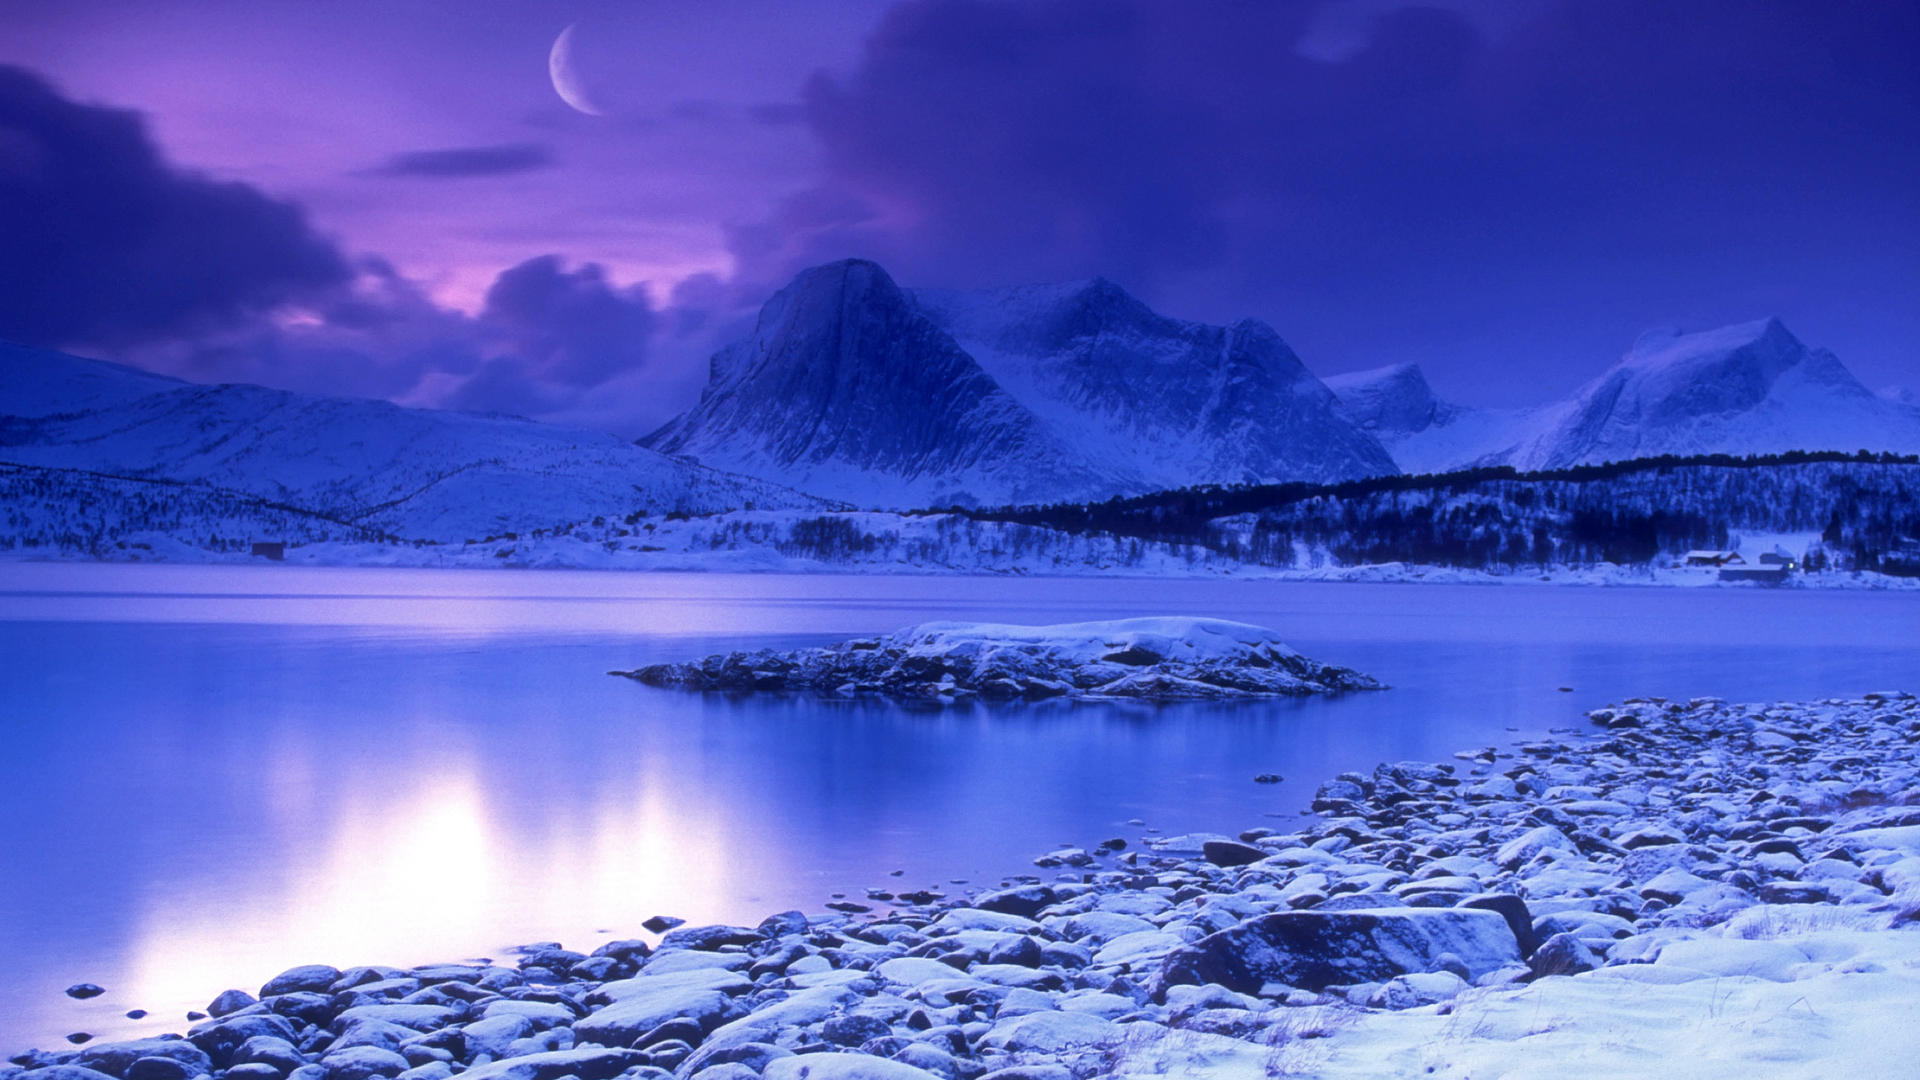 Cold Mountain Lake at Dusk Skarstad Norway Wallpaper